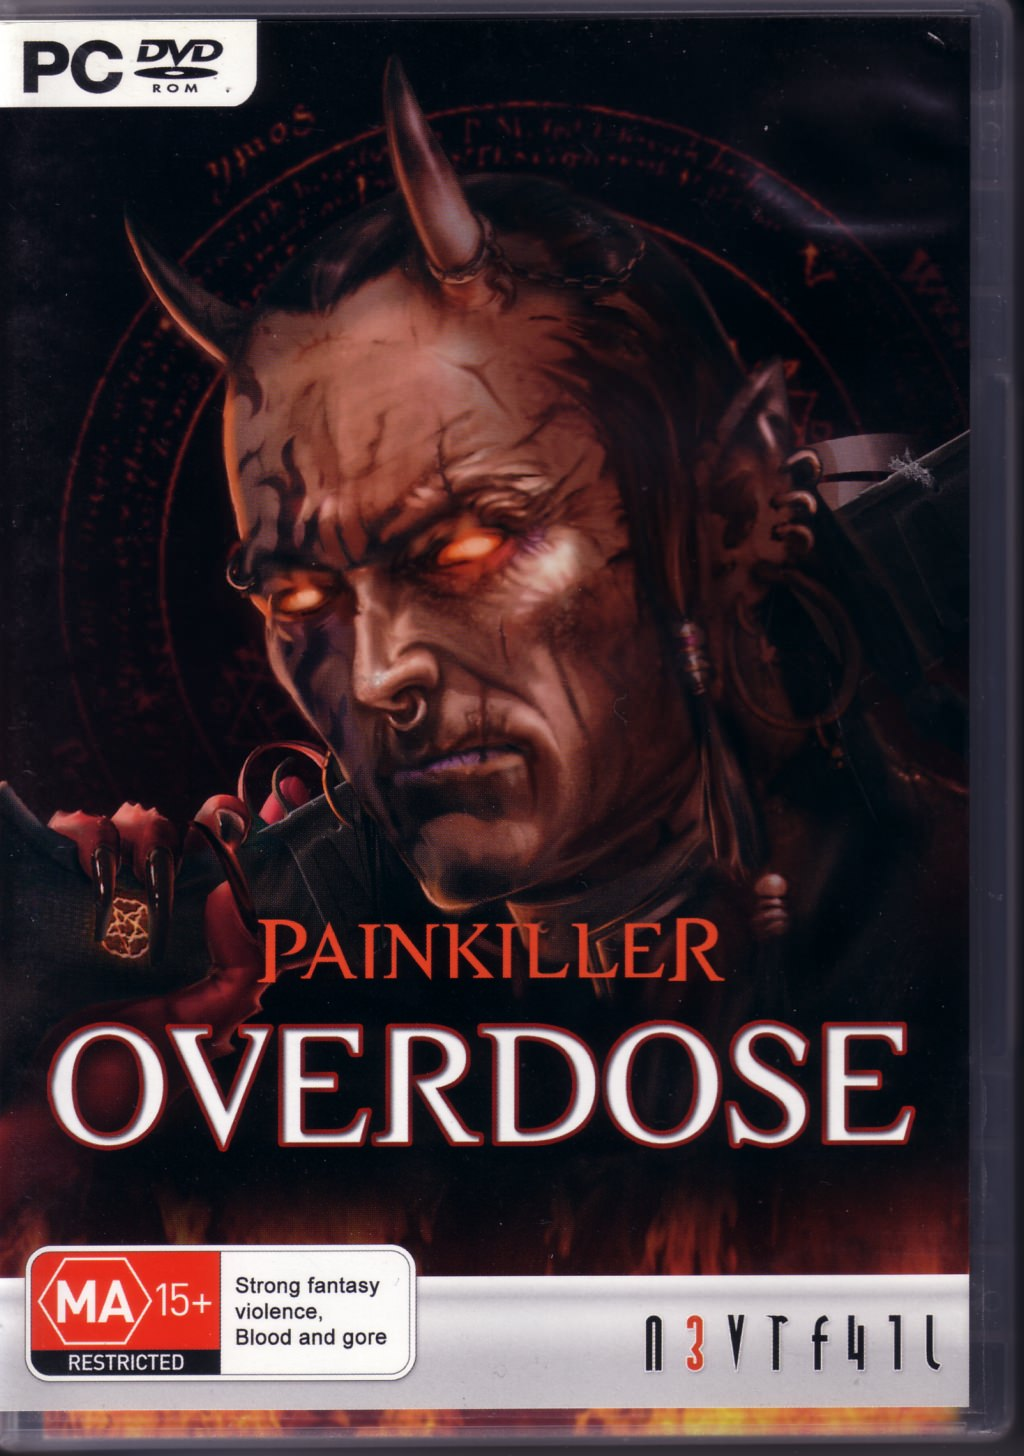 Painkiller Overdose picture